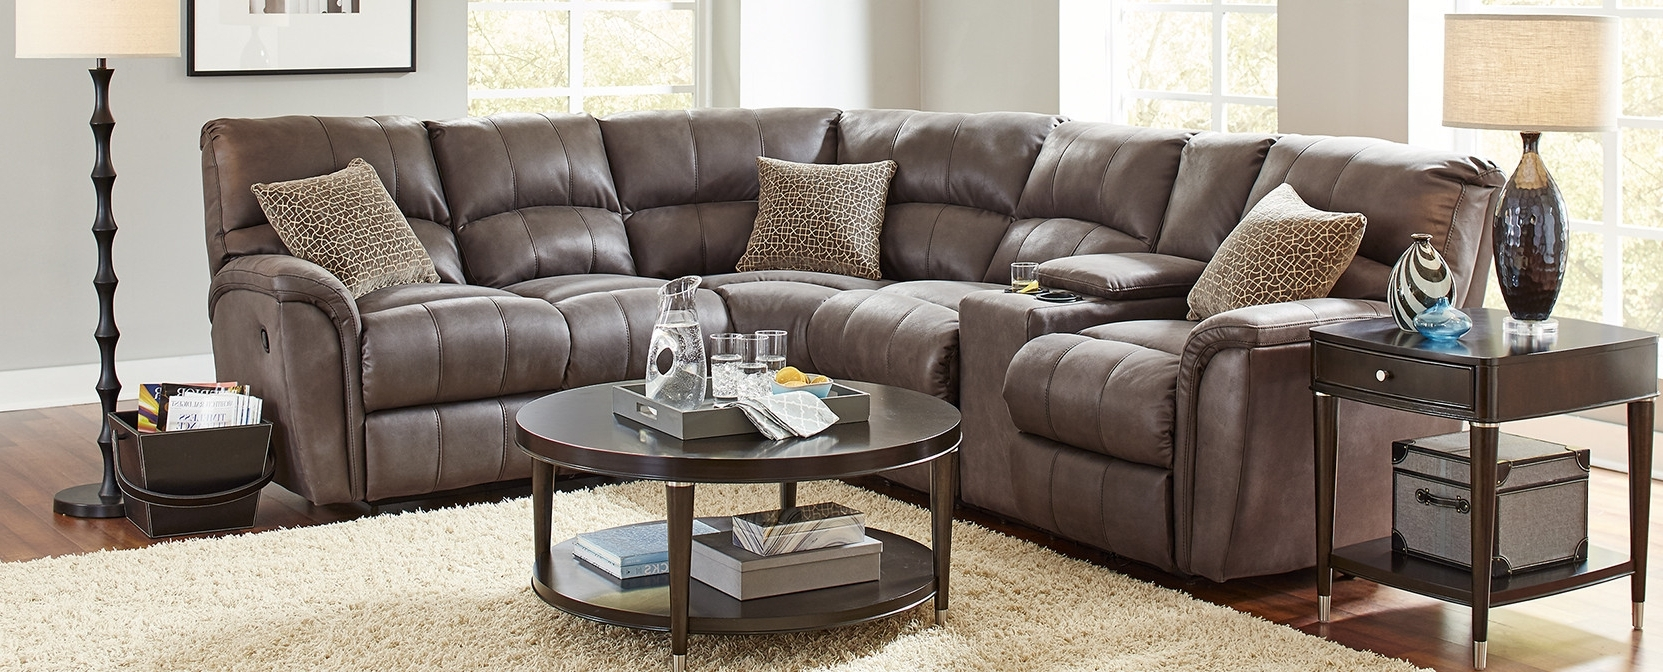 Oakville Sectional Sofas For Popular Furniture Sectional Sofa (View 9 of 20)